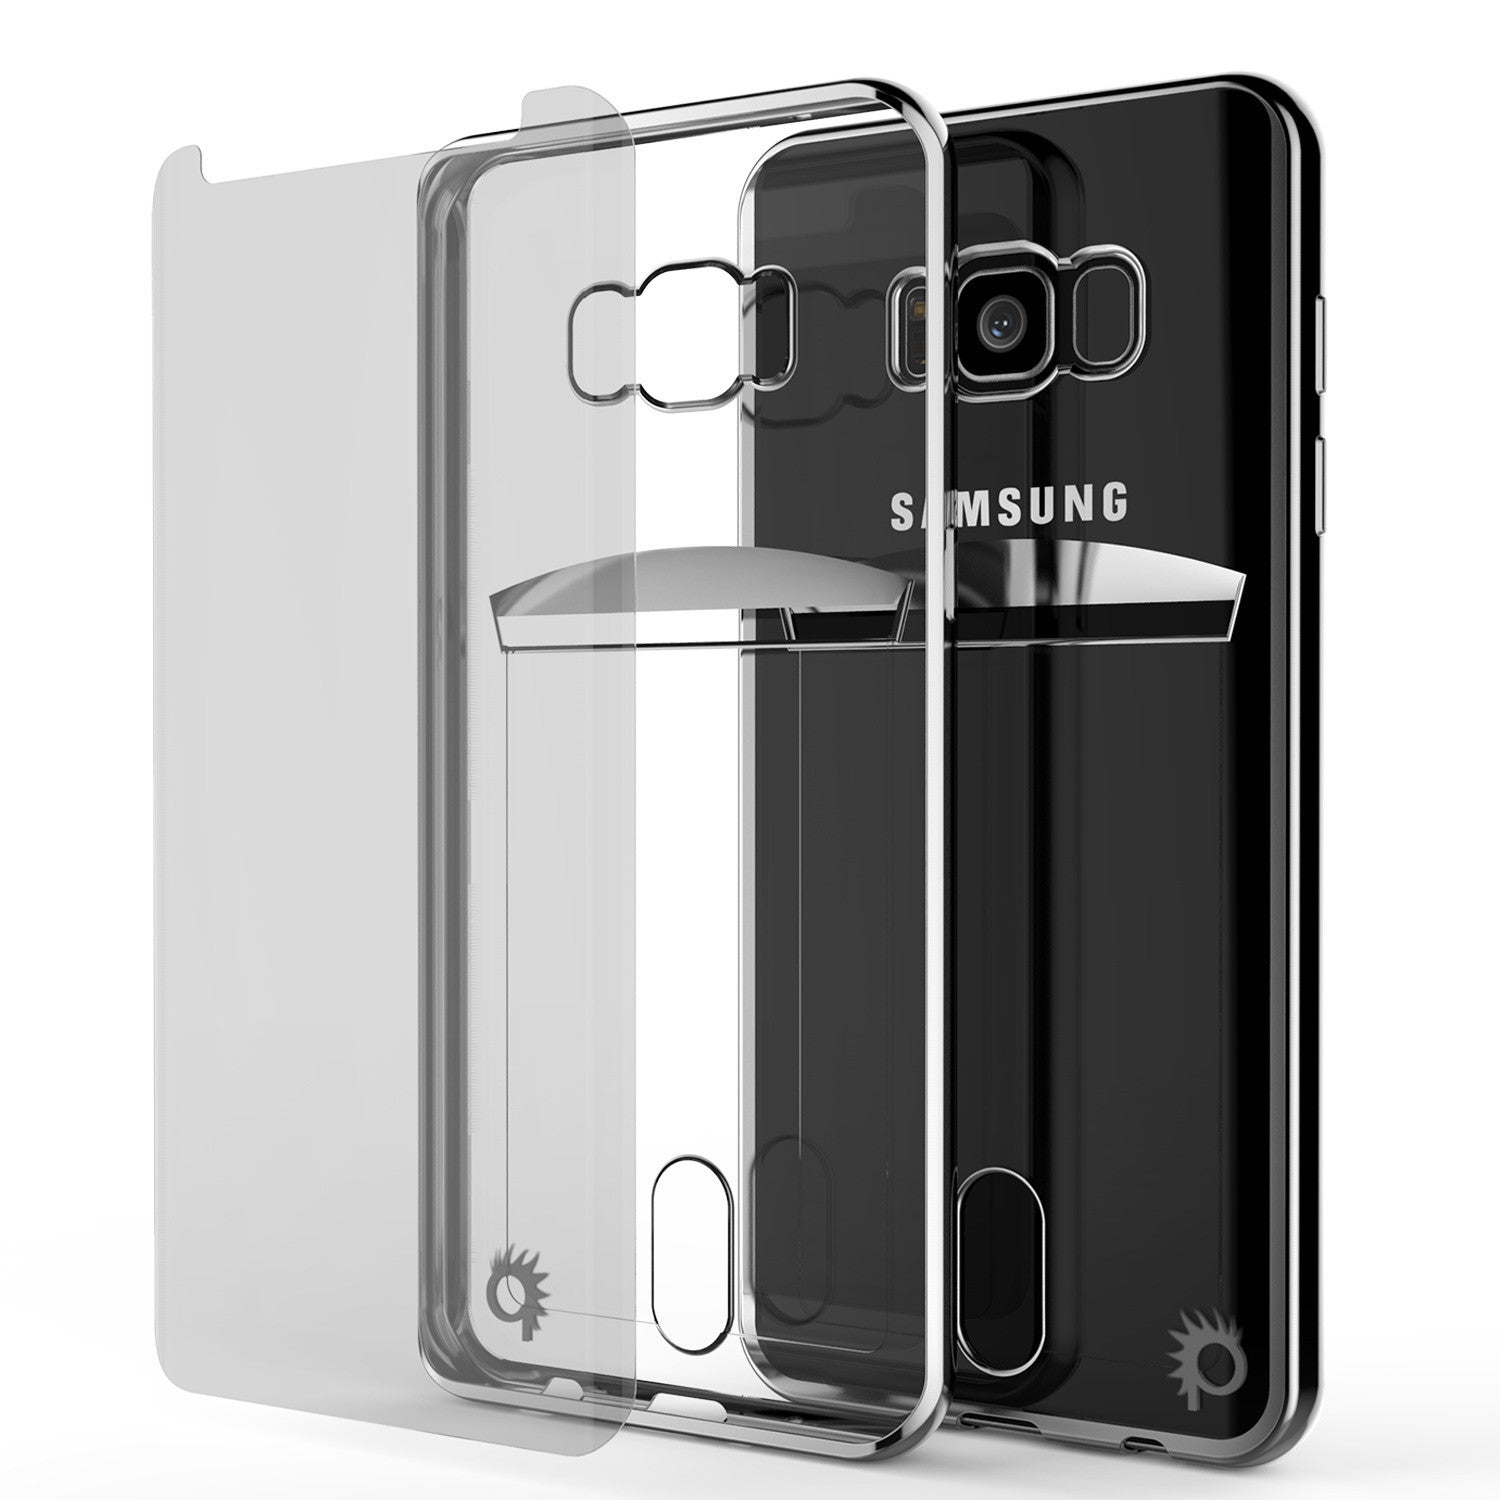 Galaxy S8 Case, PUNKCASE® LUCID Silver Series | Card Slot | SHIELD Screen Protector | Ultra fit